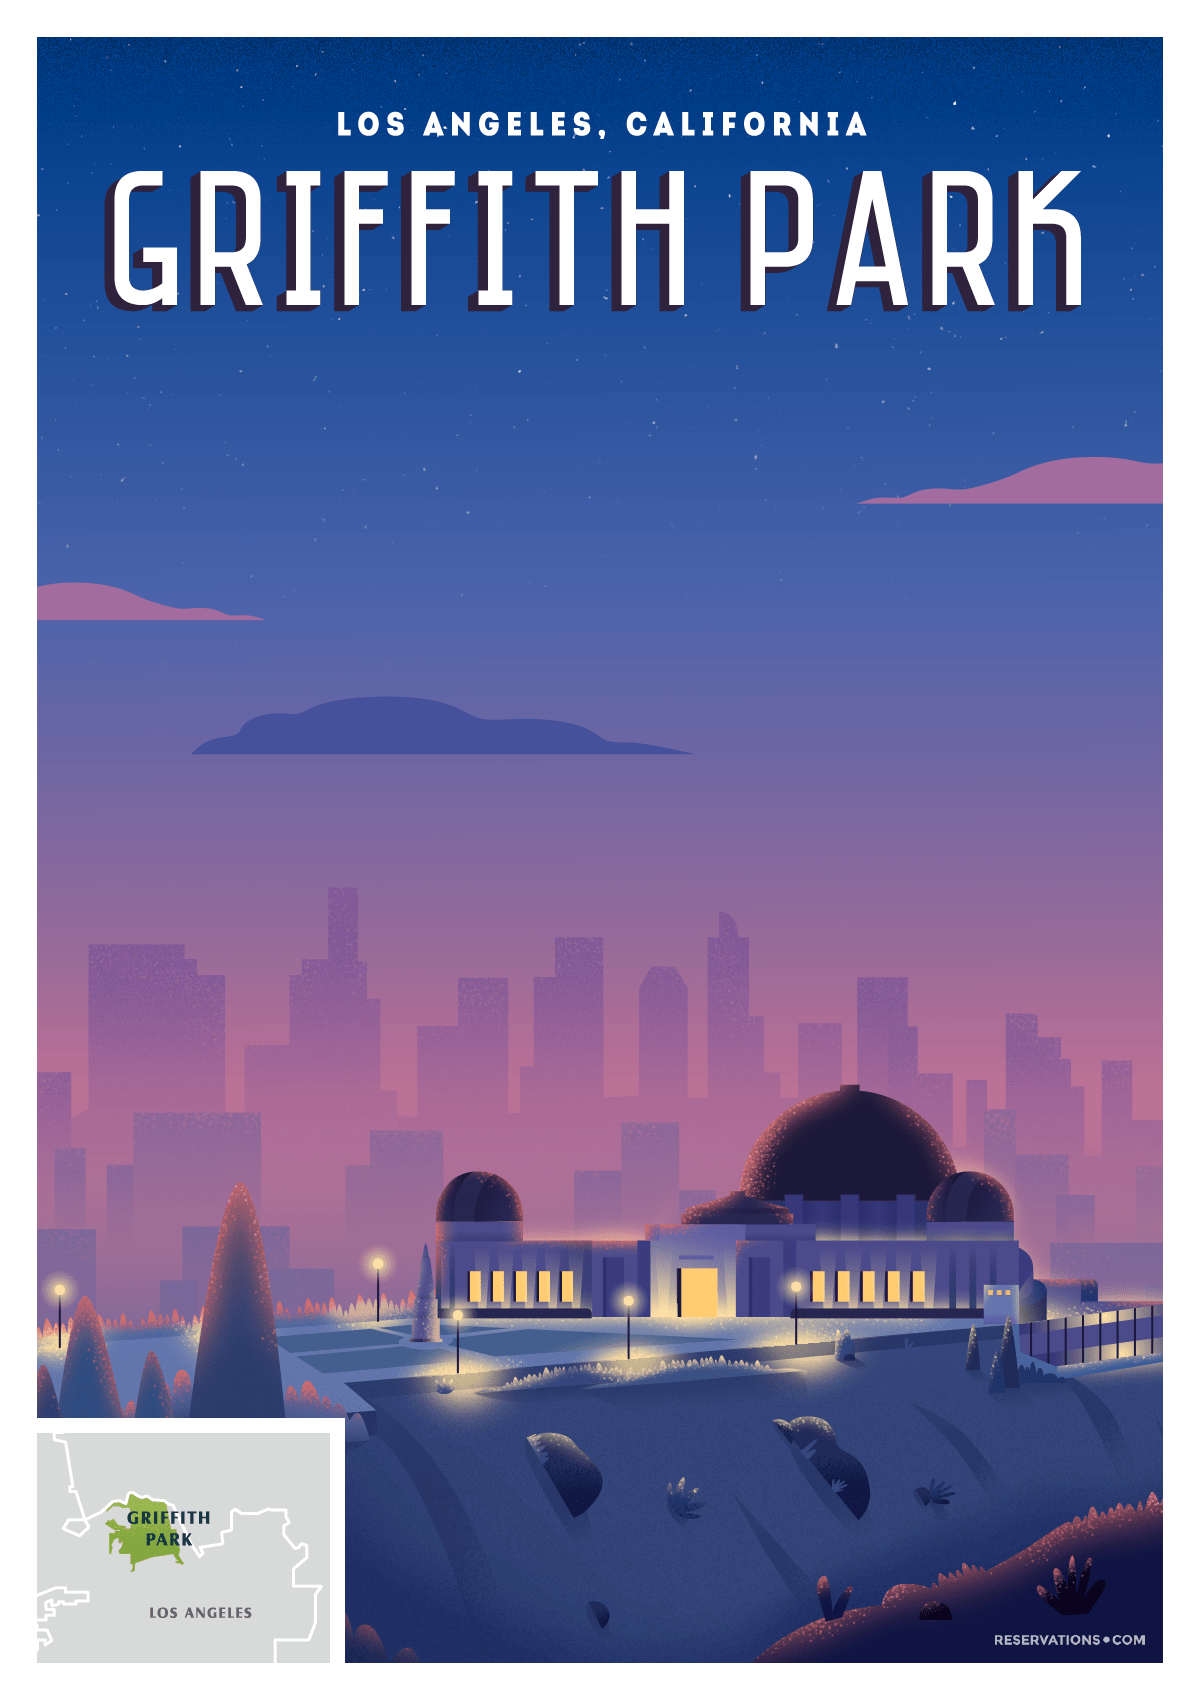 griffith park lost angeles poster